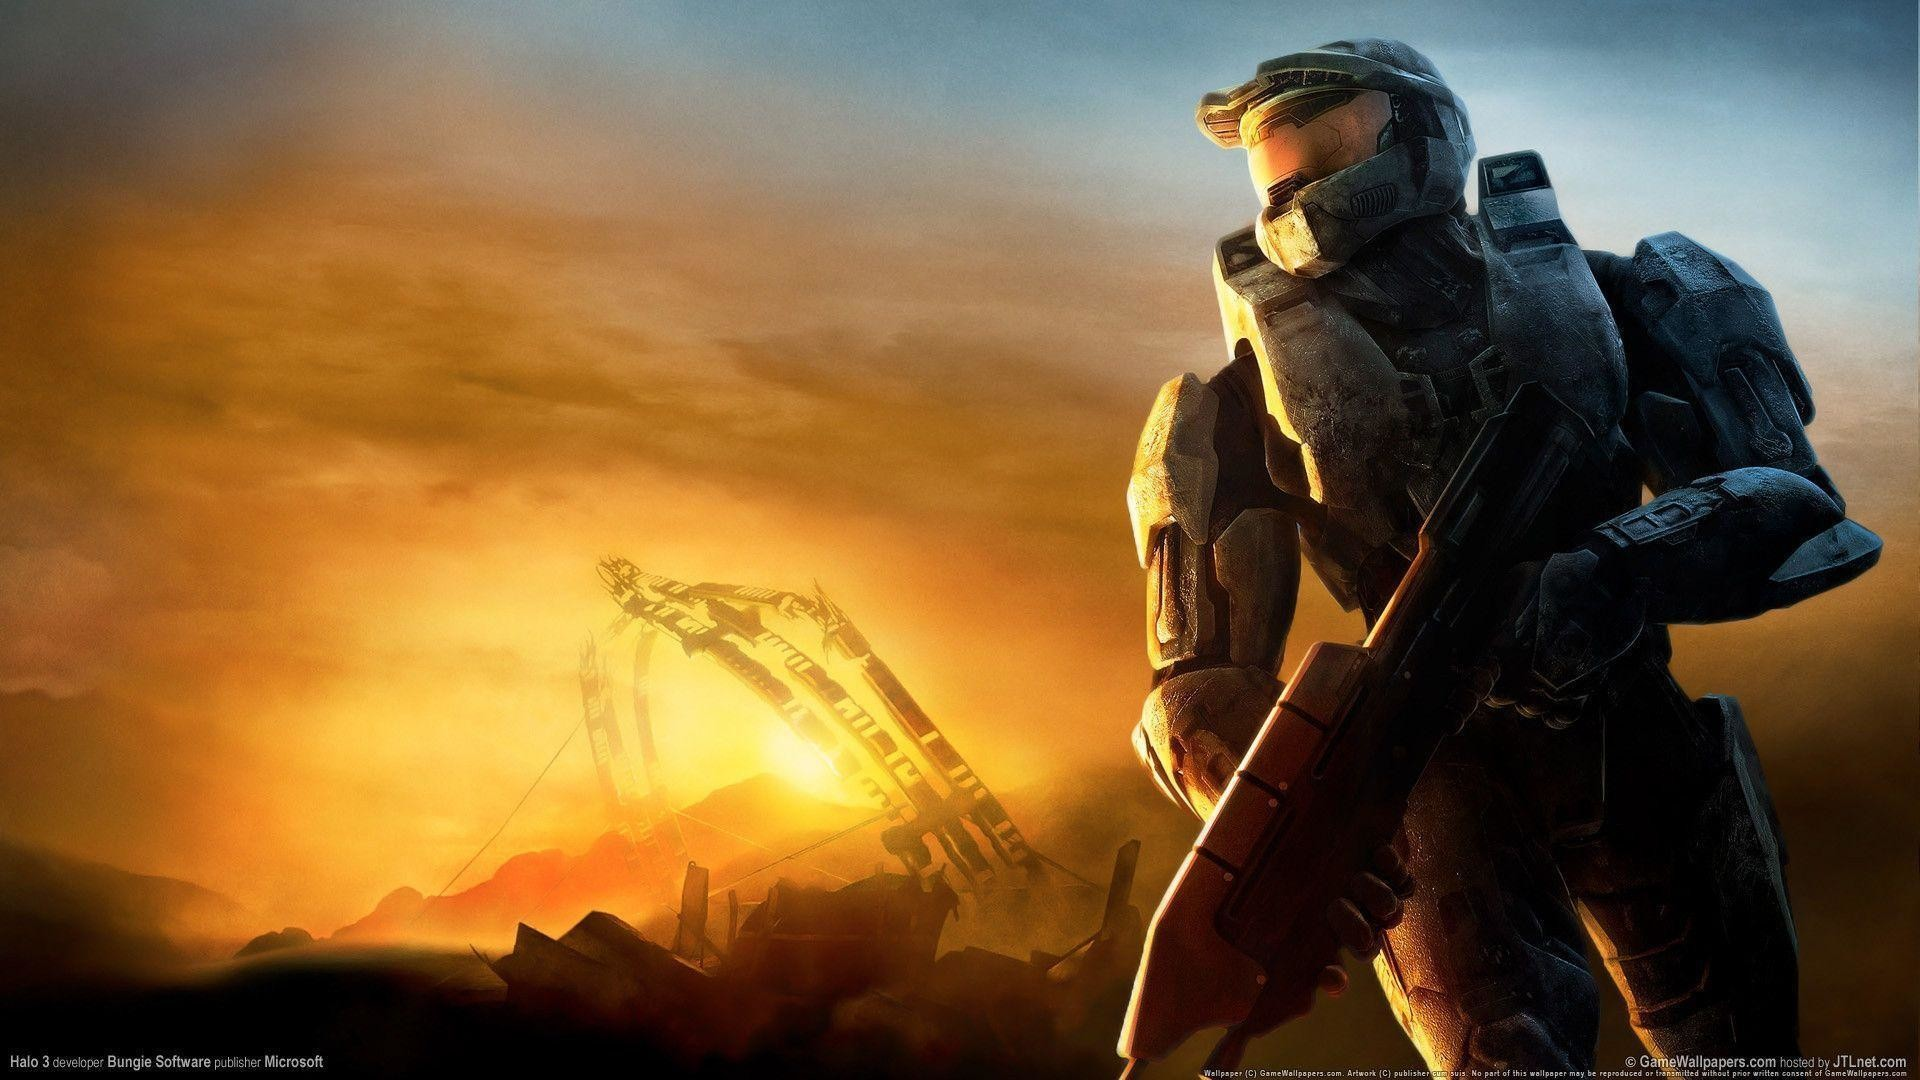 Halo 3 Background Wallpapertag